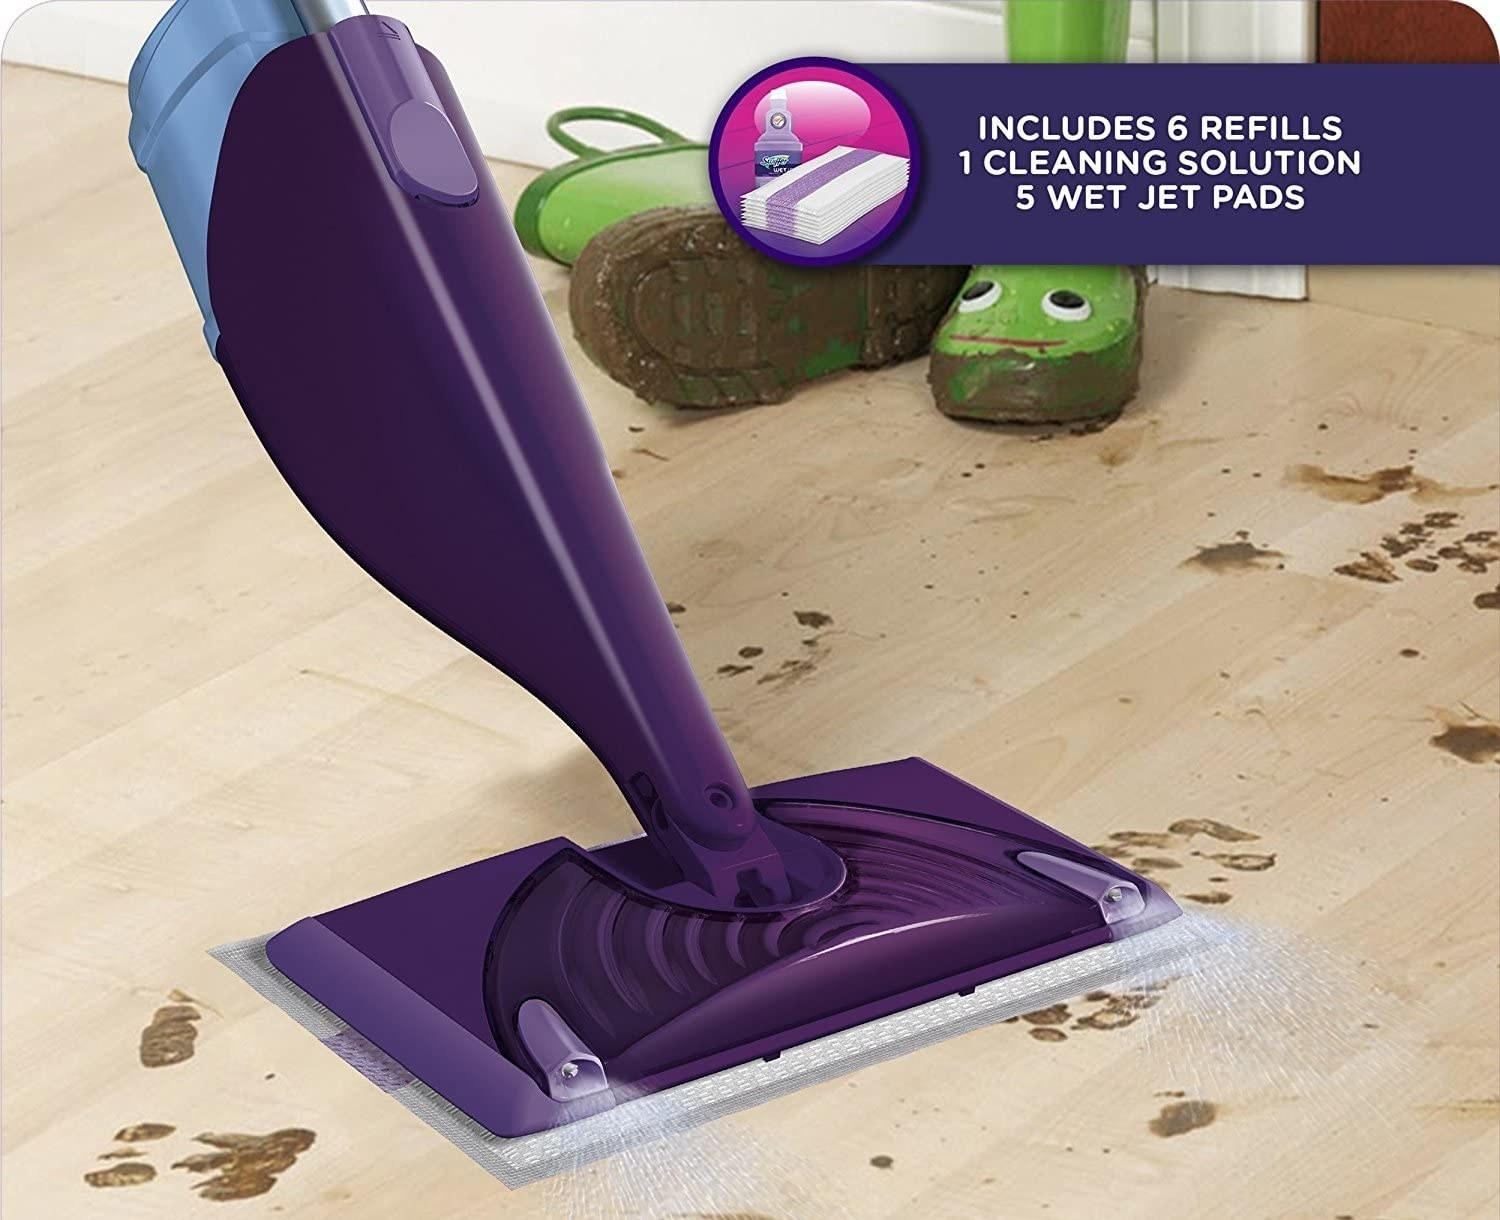 The WetJet being used to clean a floor filled with muddy paw prints